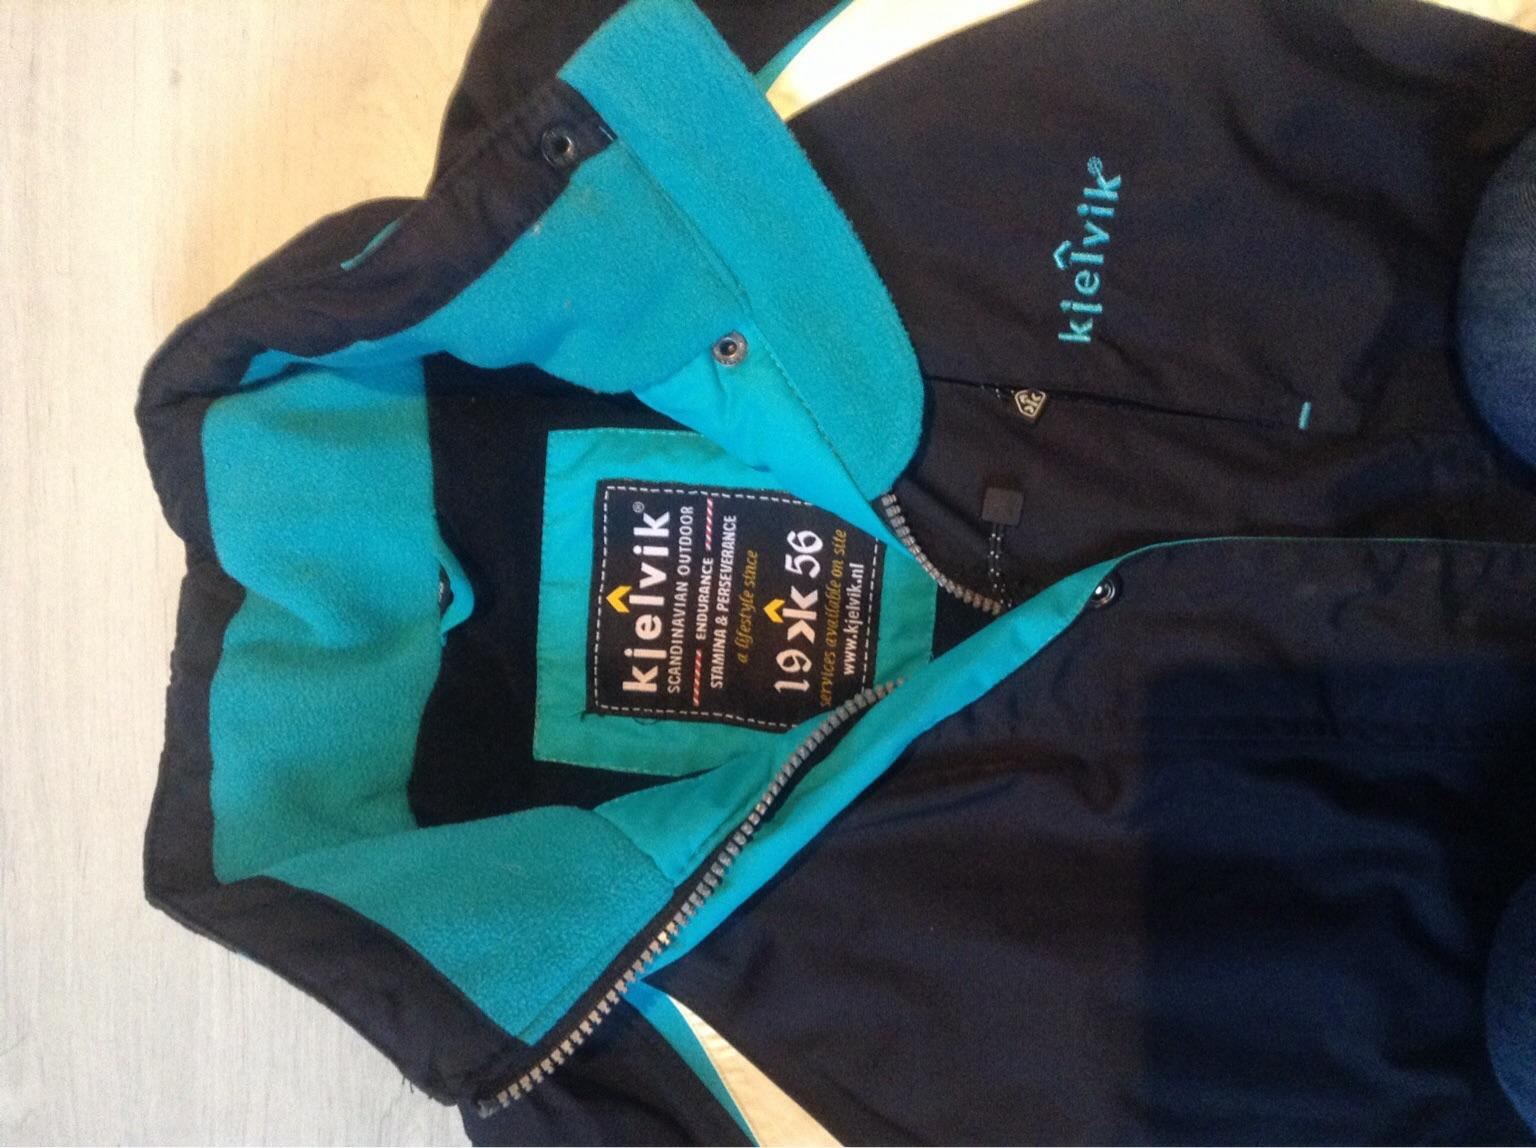 Outdoor Winter 36 Kjelvik Jacke Damen Gr 0yv8NwmnO